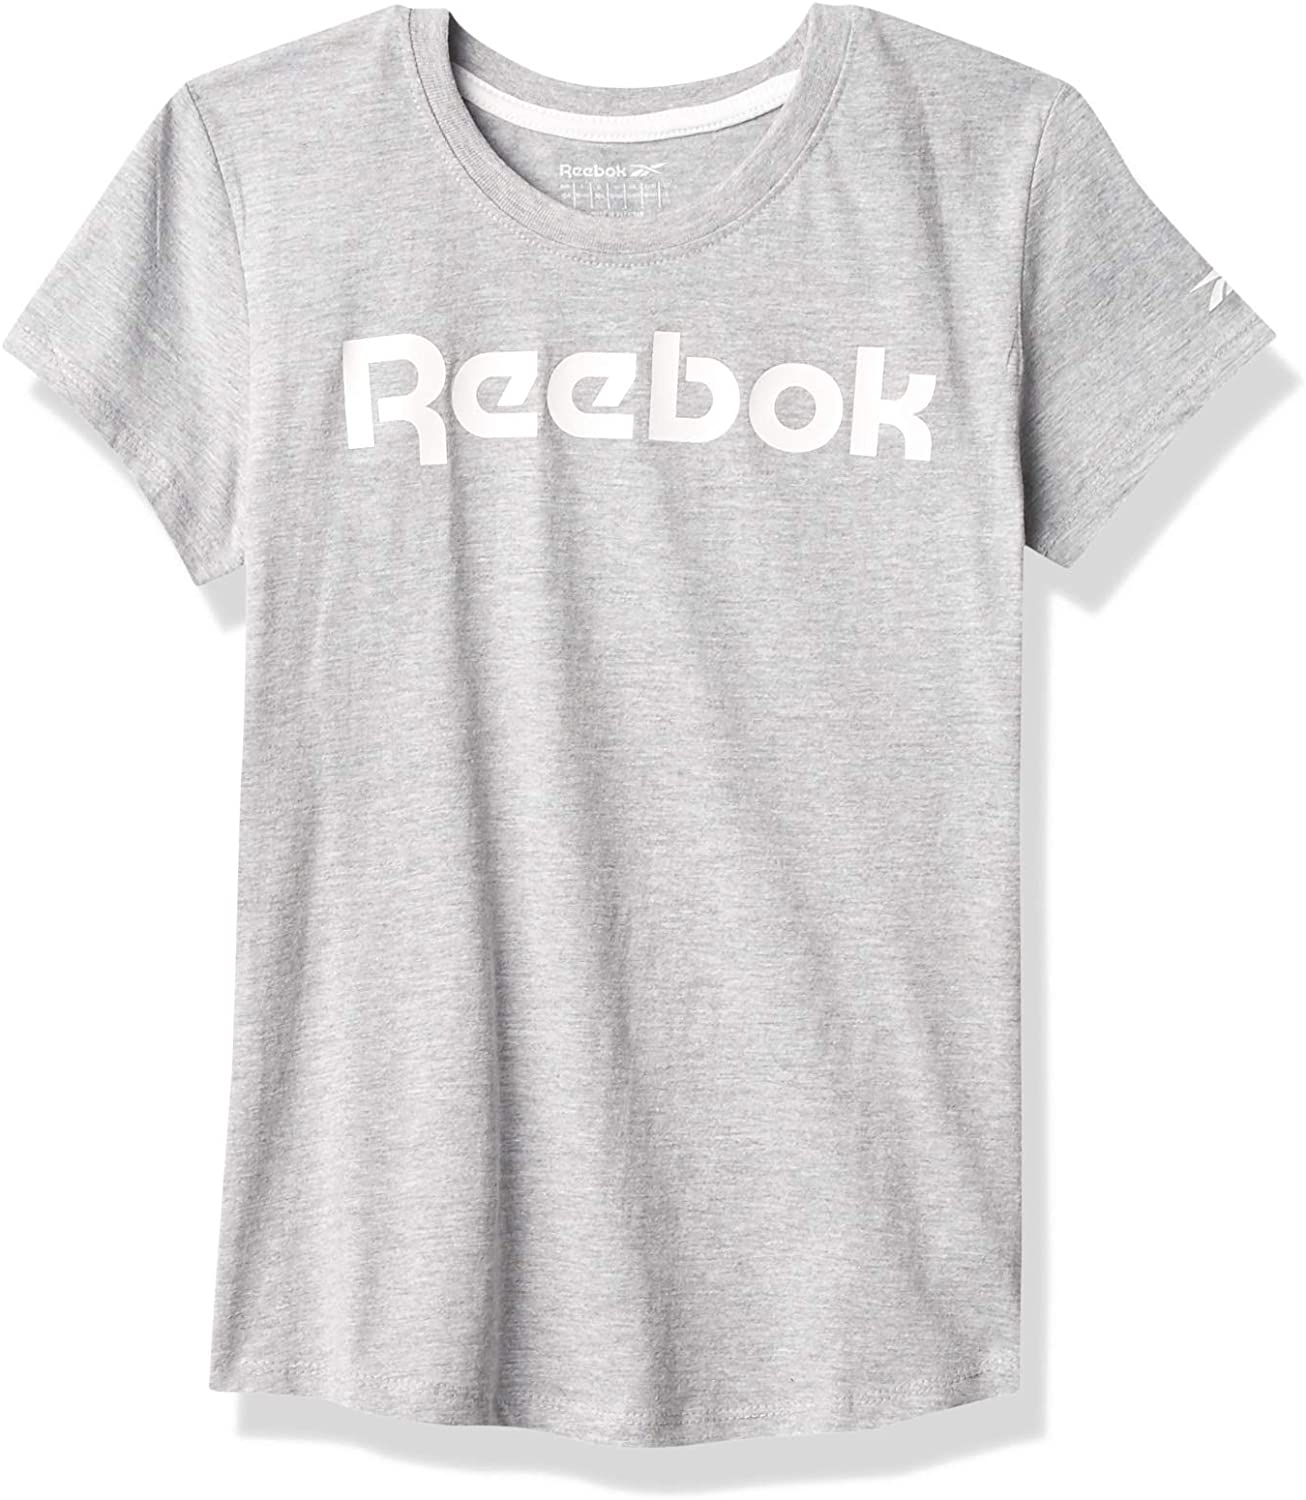 In stock Reebok Girls' T-Shirts NEW before selling ☆ Ss